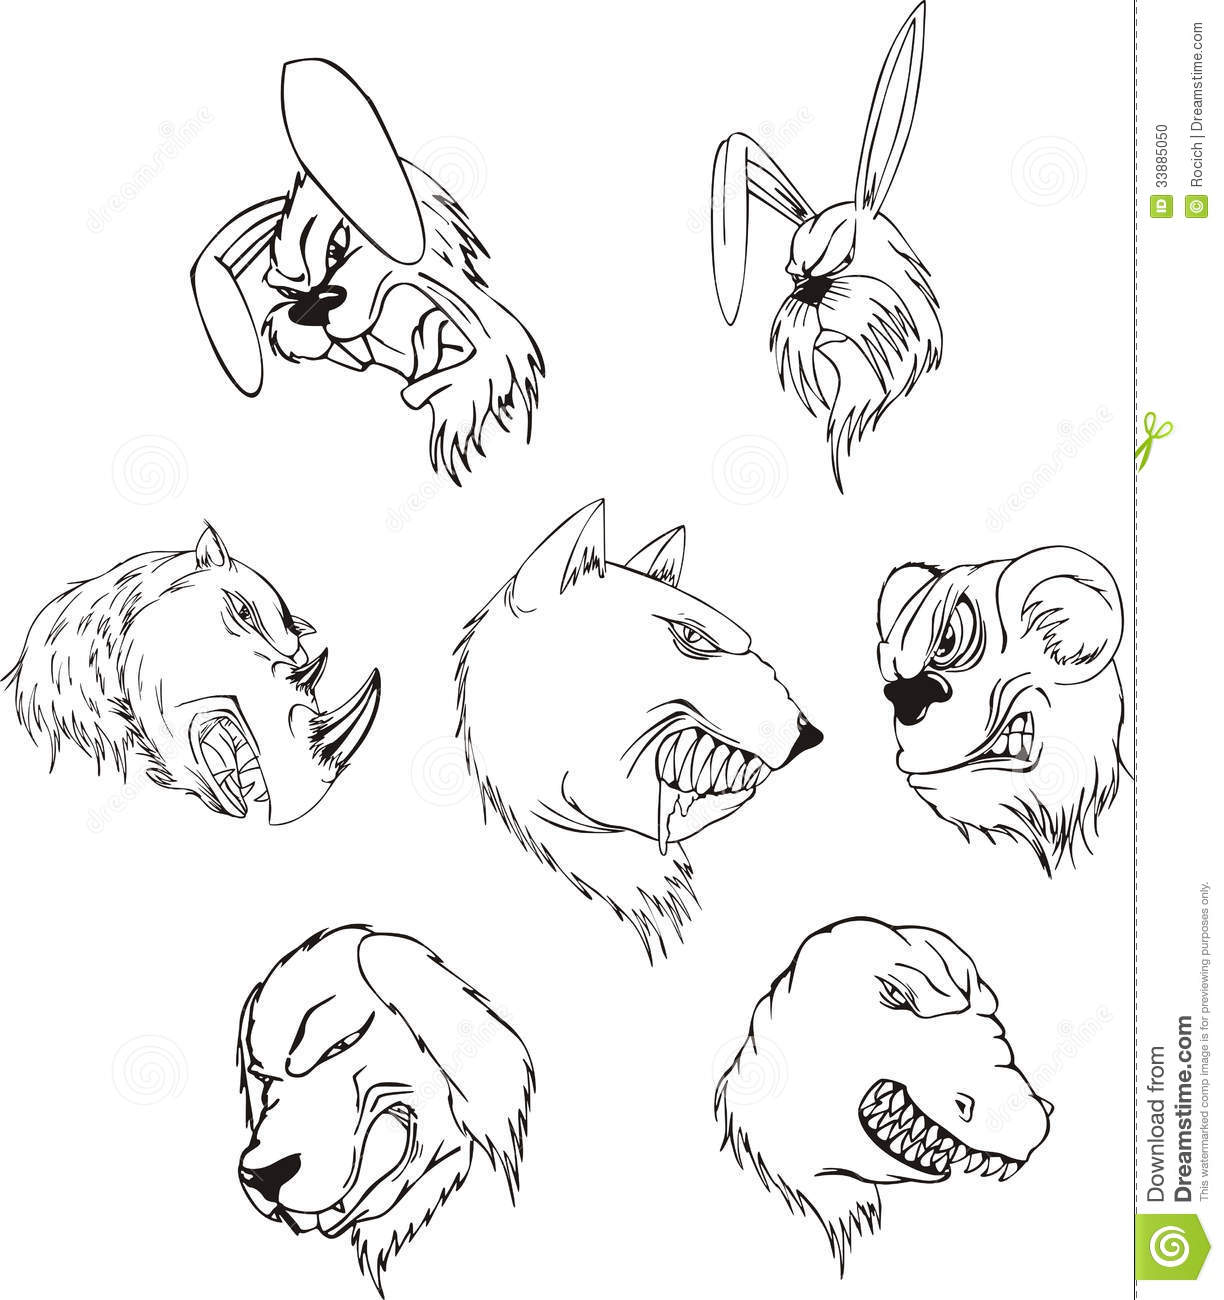 Dog Body Language Charts additionally Th also Canine Body Language further Kropssprog Hos Kaniner further 7286759. on aggressive rabbit